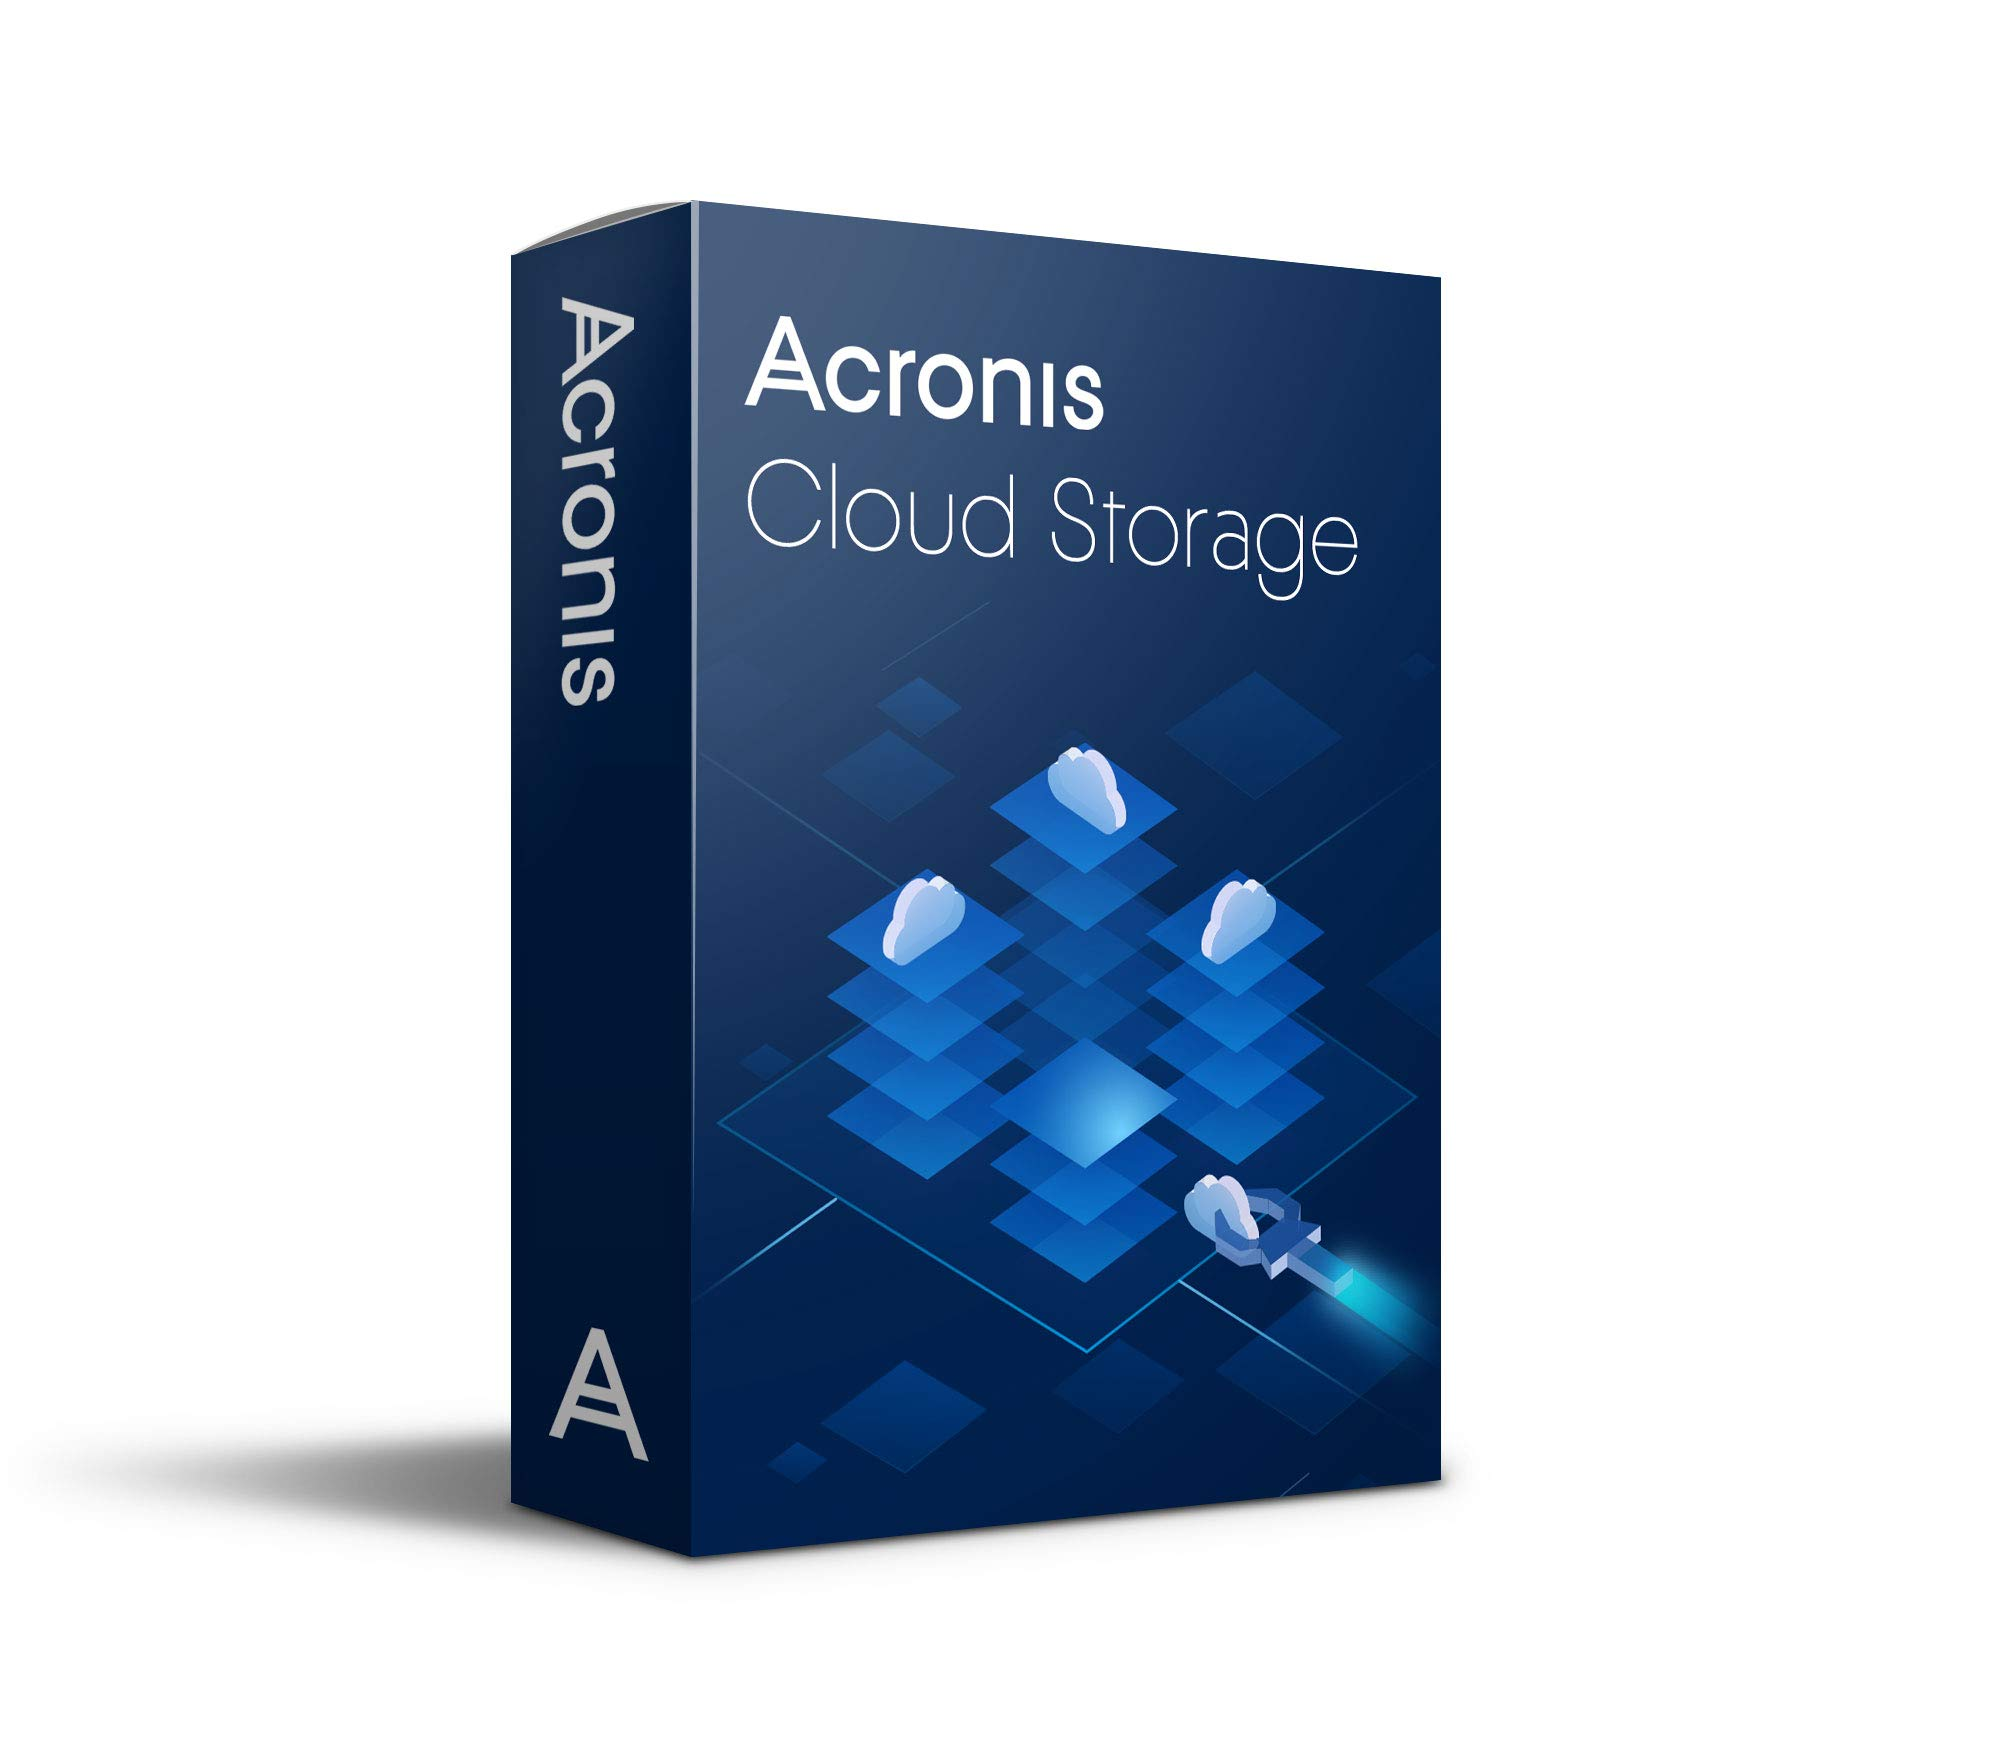 Acronis | SCABEBLOS11 | Cloud Storage Subscription License 250 GB, 1 Year by Acronis